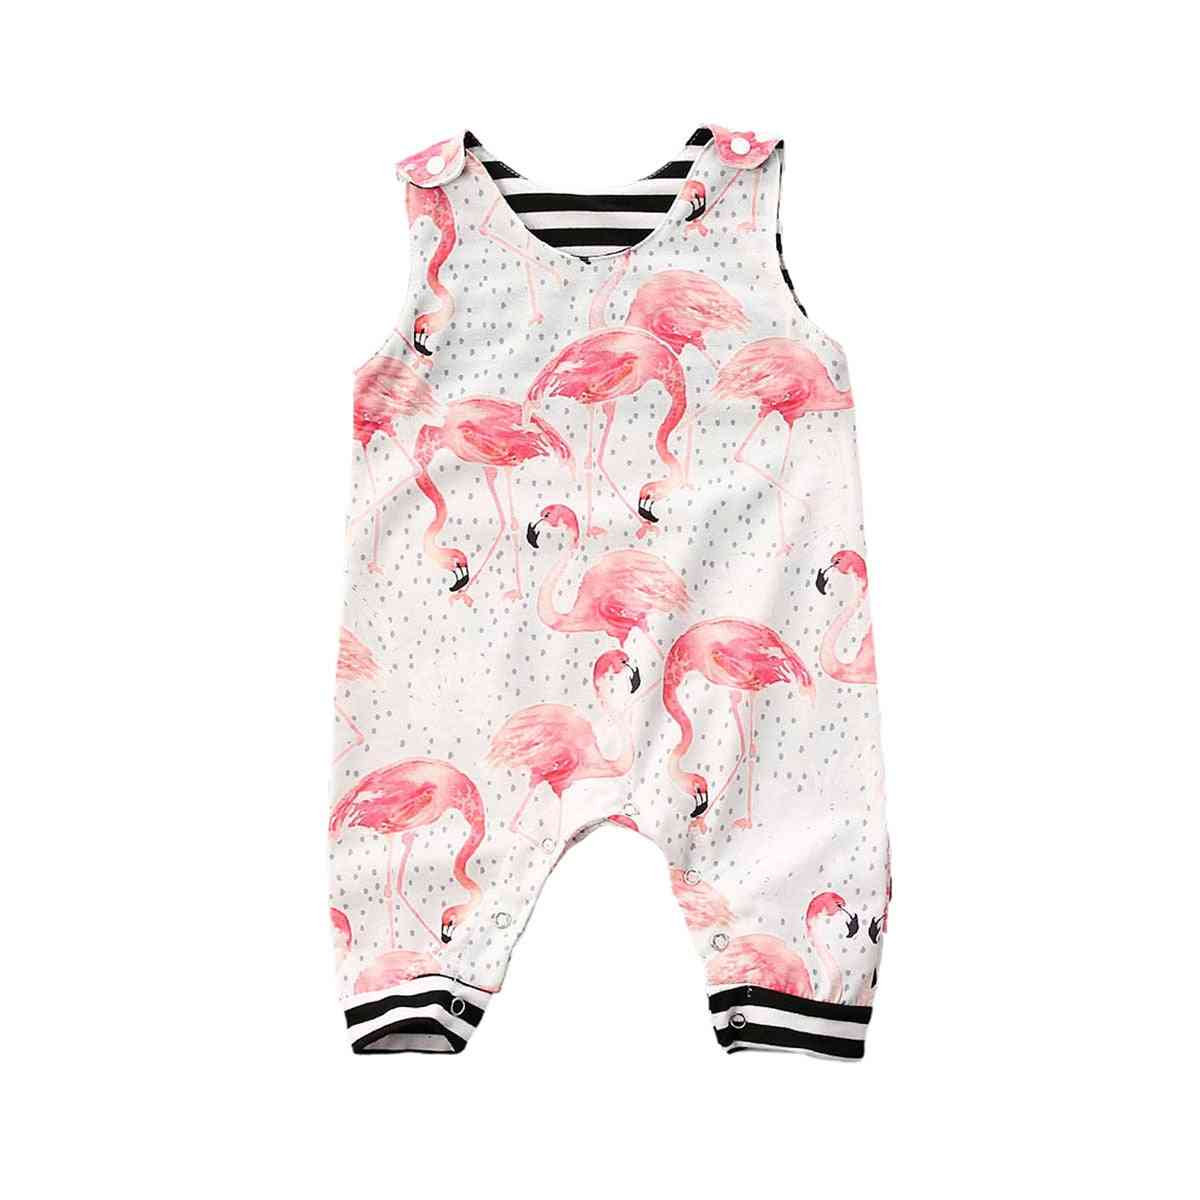 Baby Clothing Newborn Whale Romper- Sleeveless Jumpsuit, Outfit Clothes